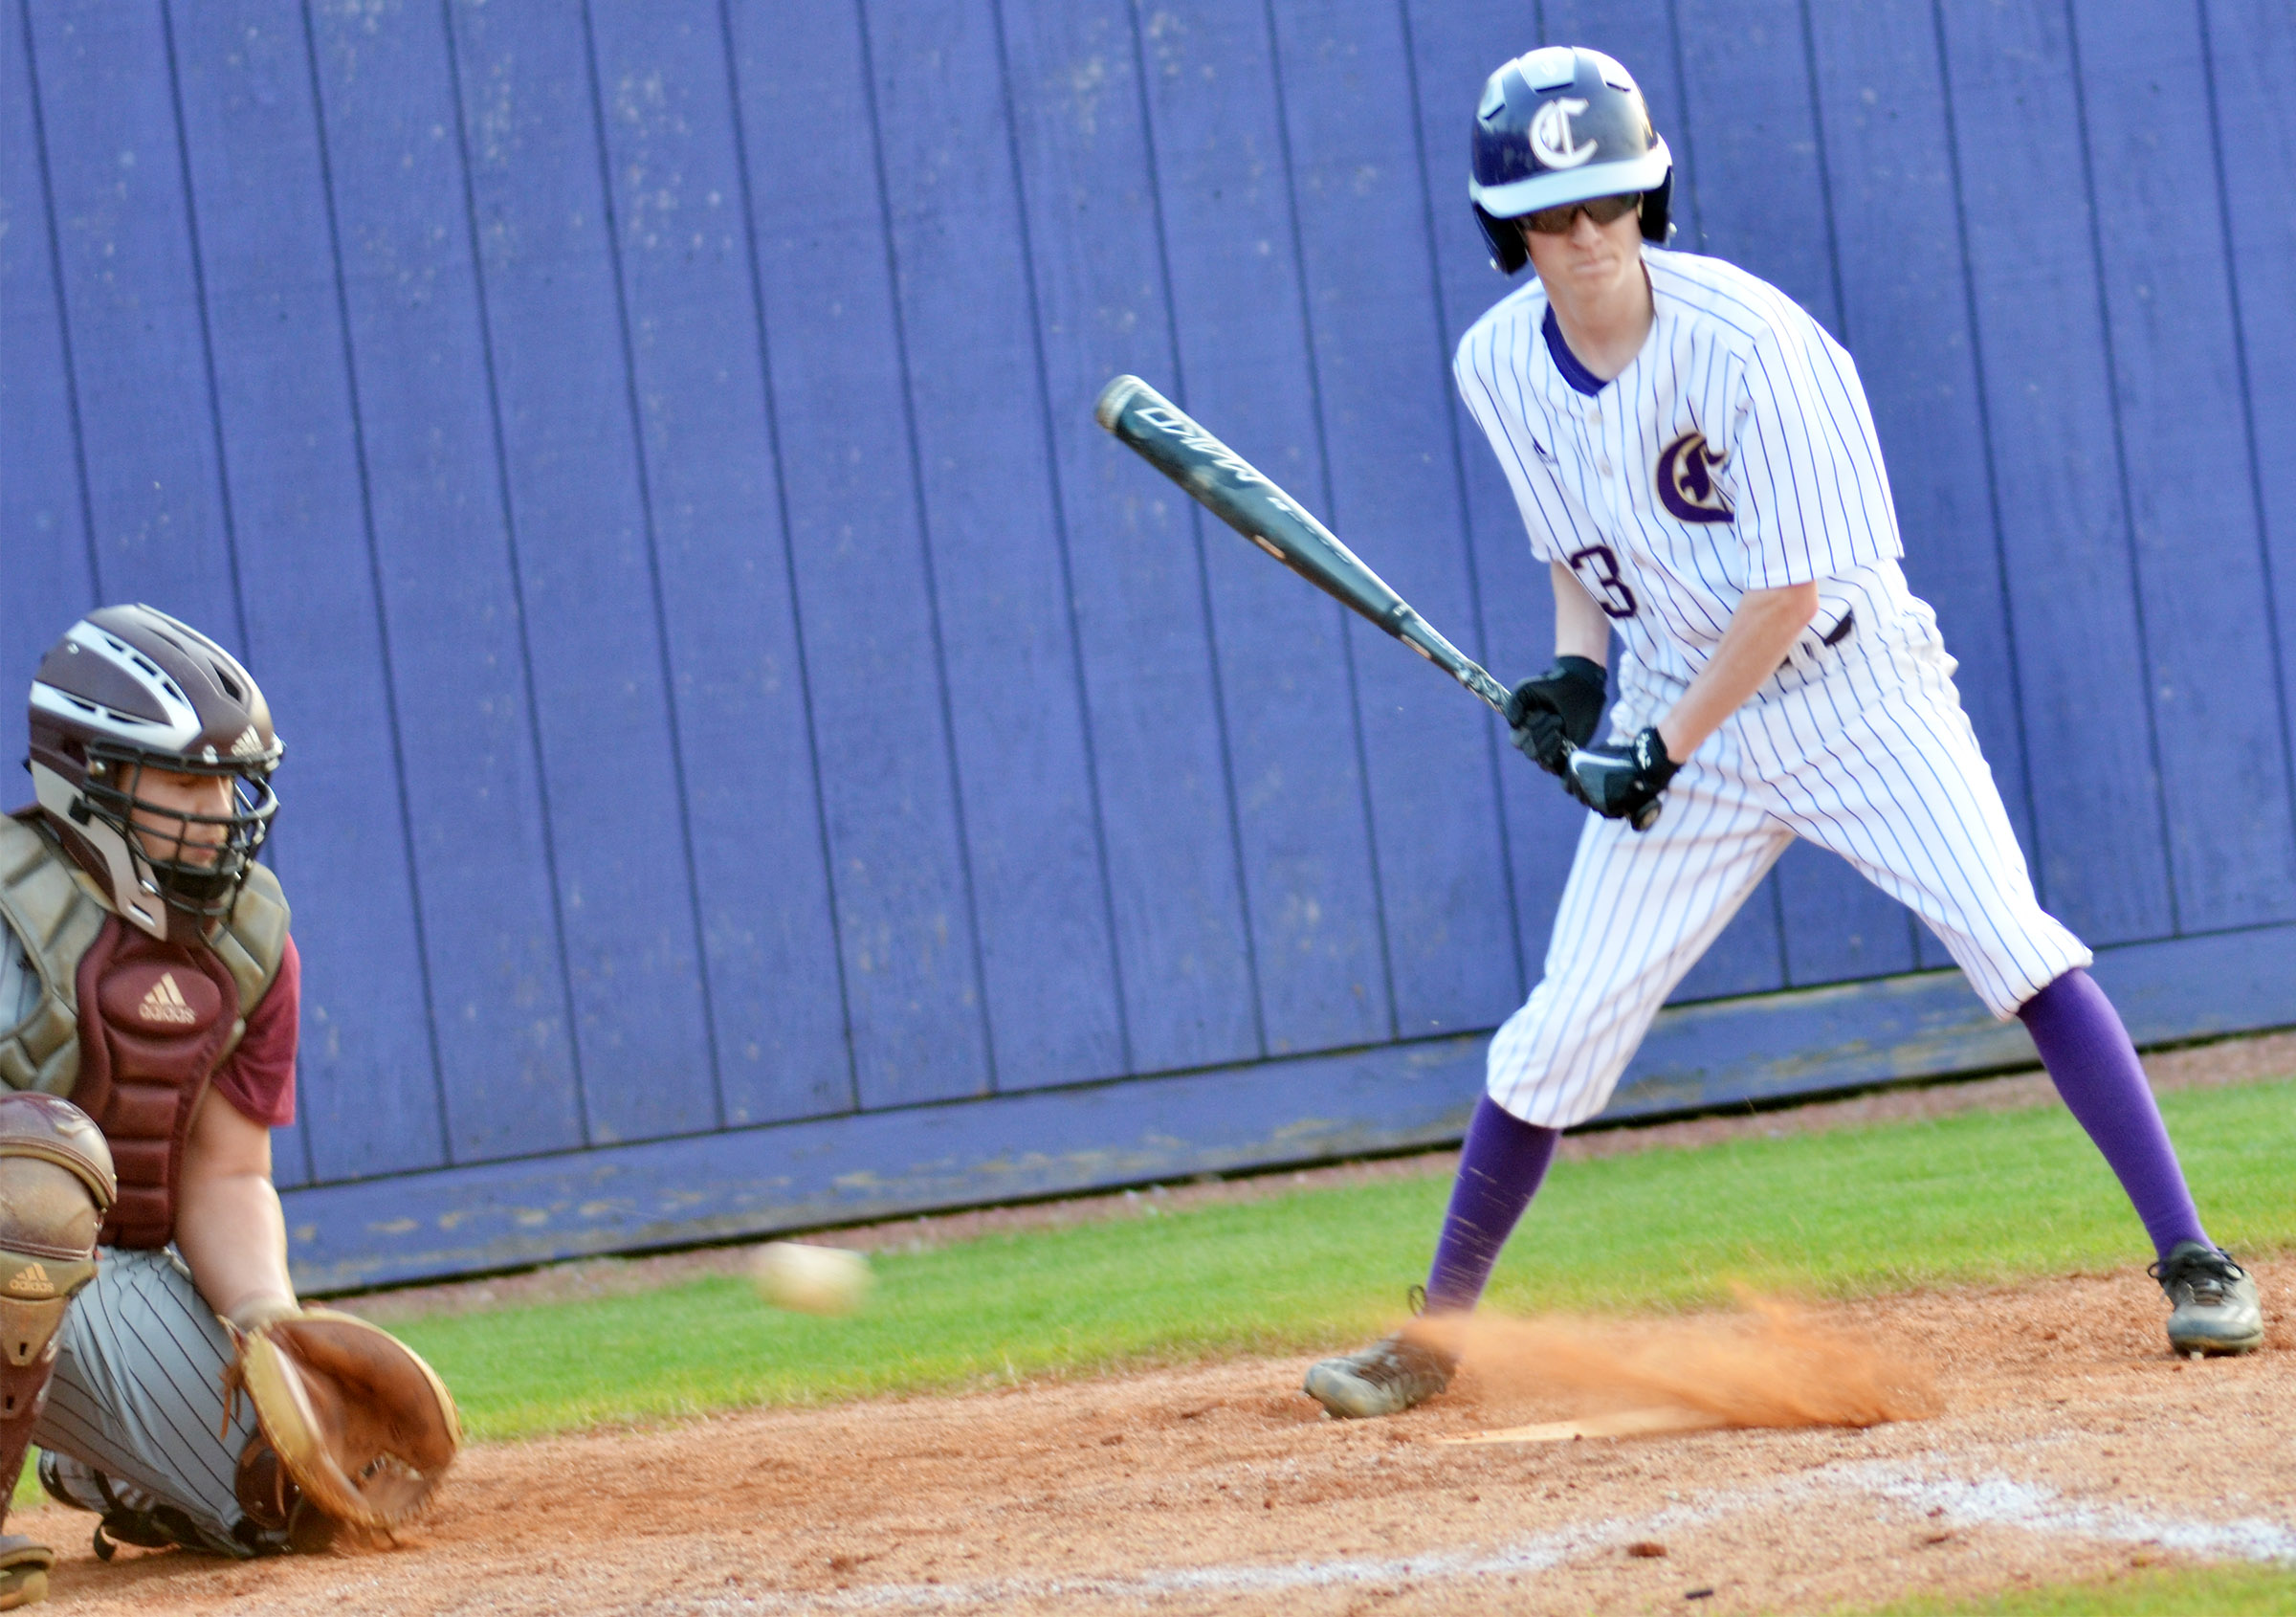 CHS sophomore Jackson Hinton watches the runner on first.